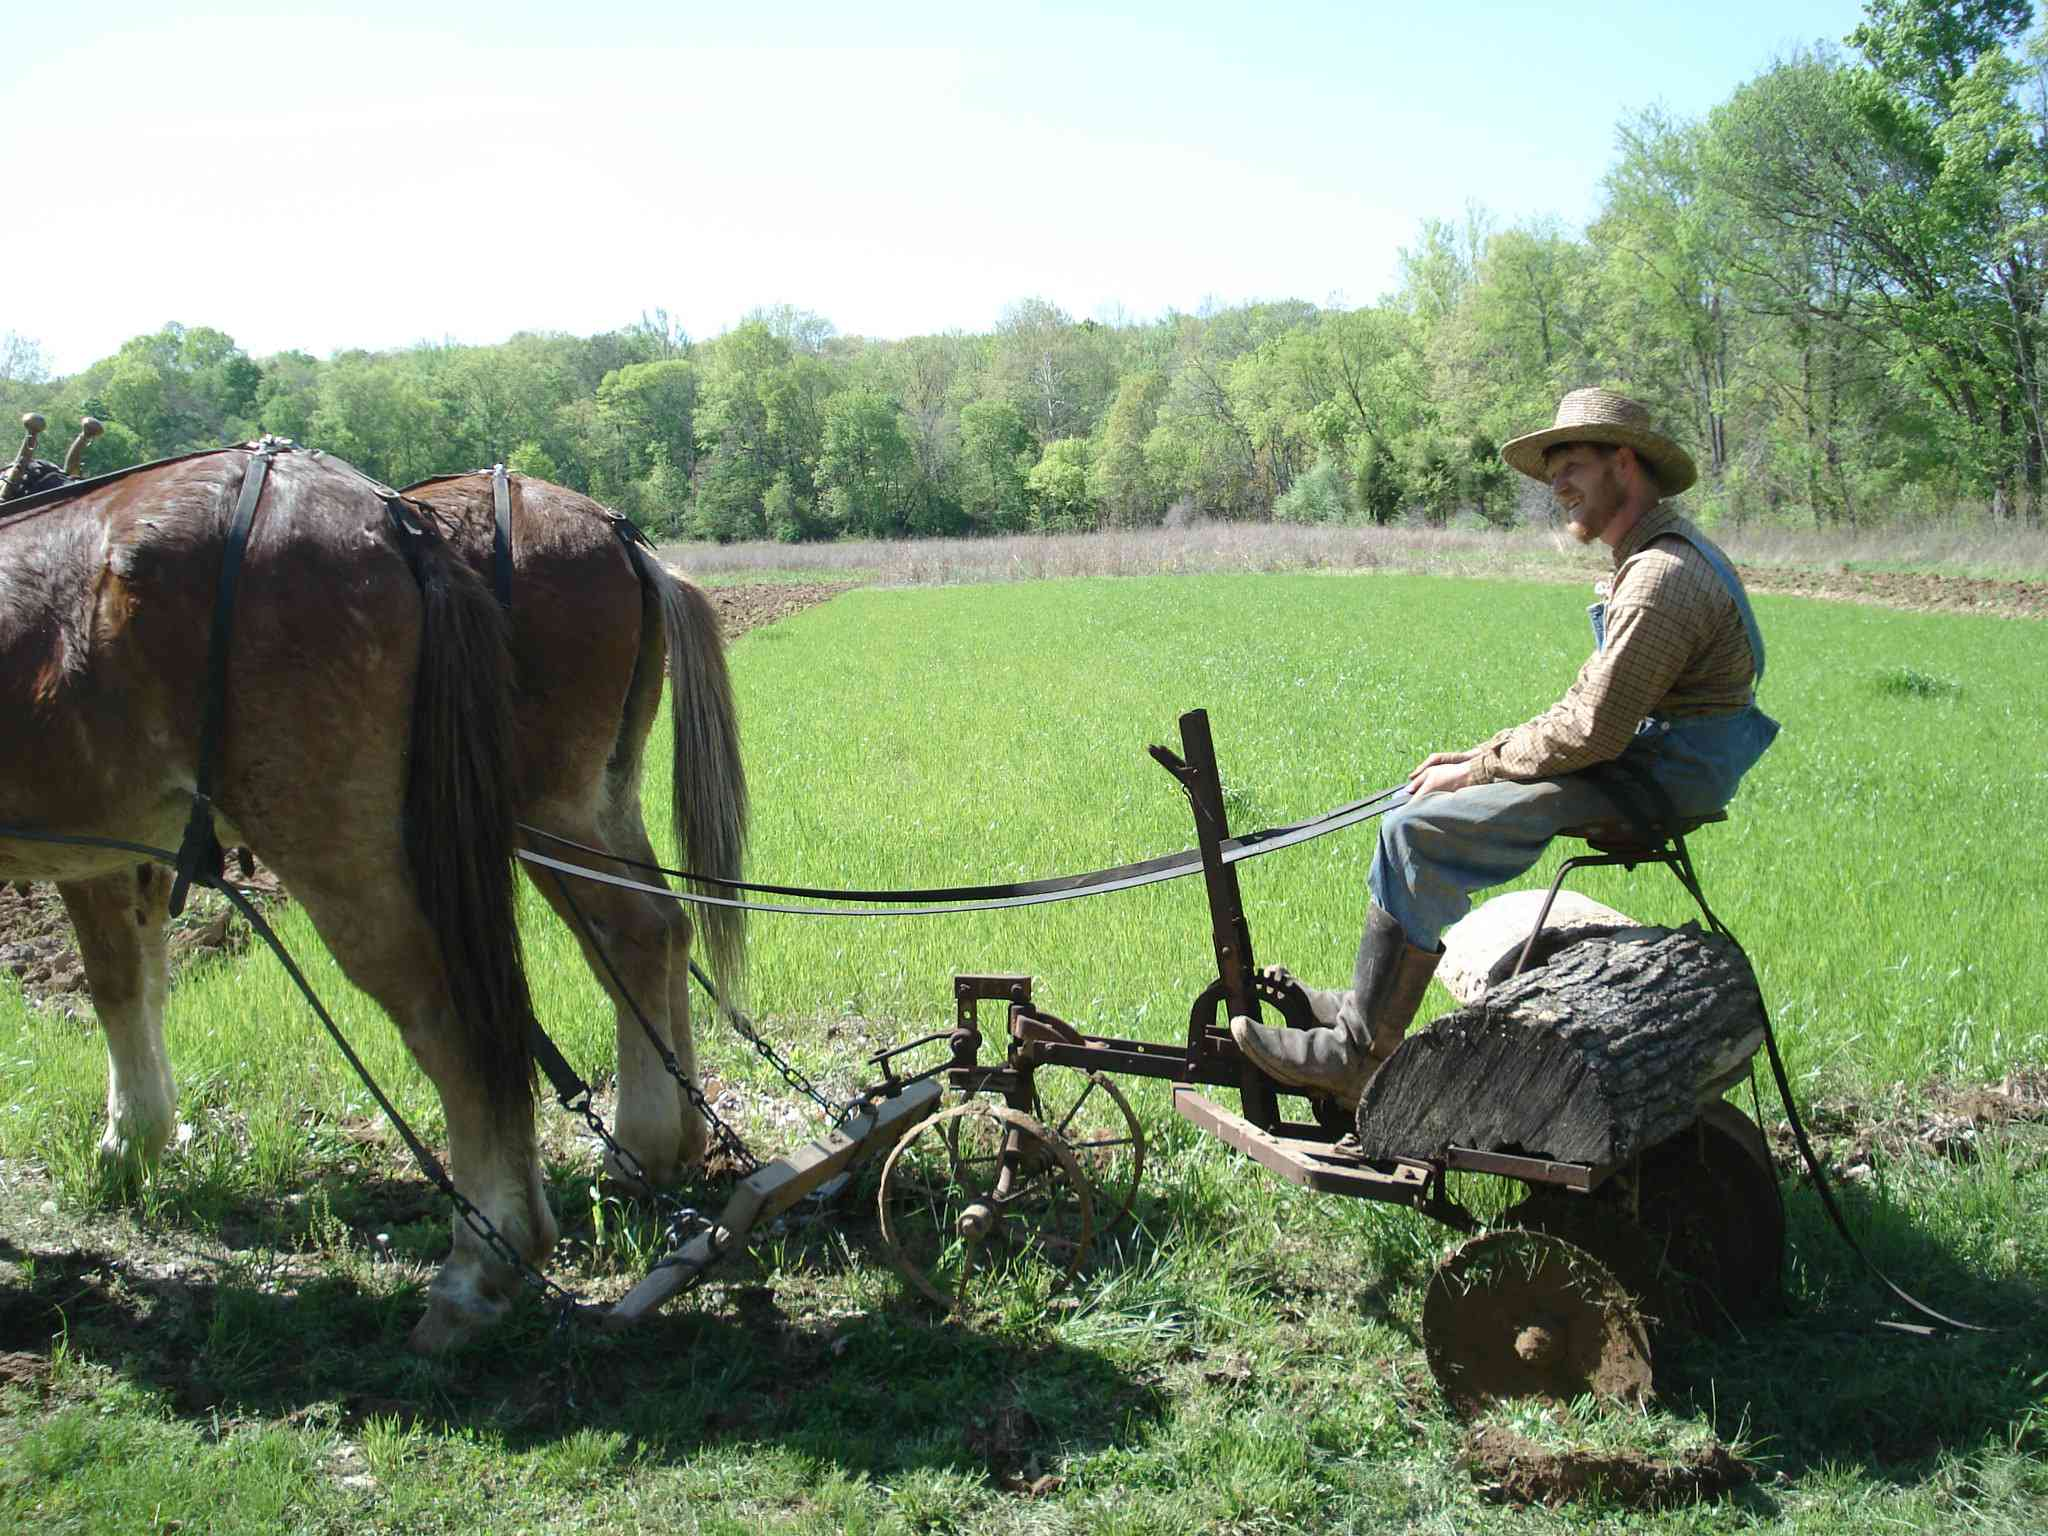 A man sits on a traditional mule-drawn plow in a farm field